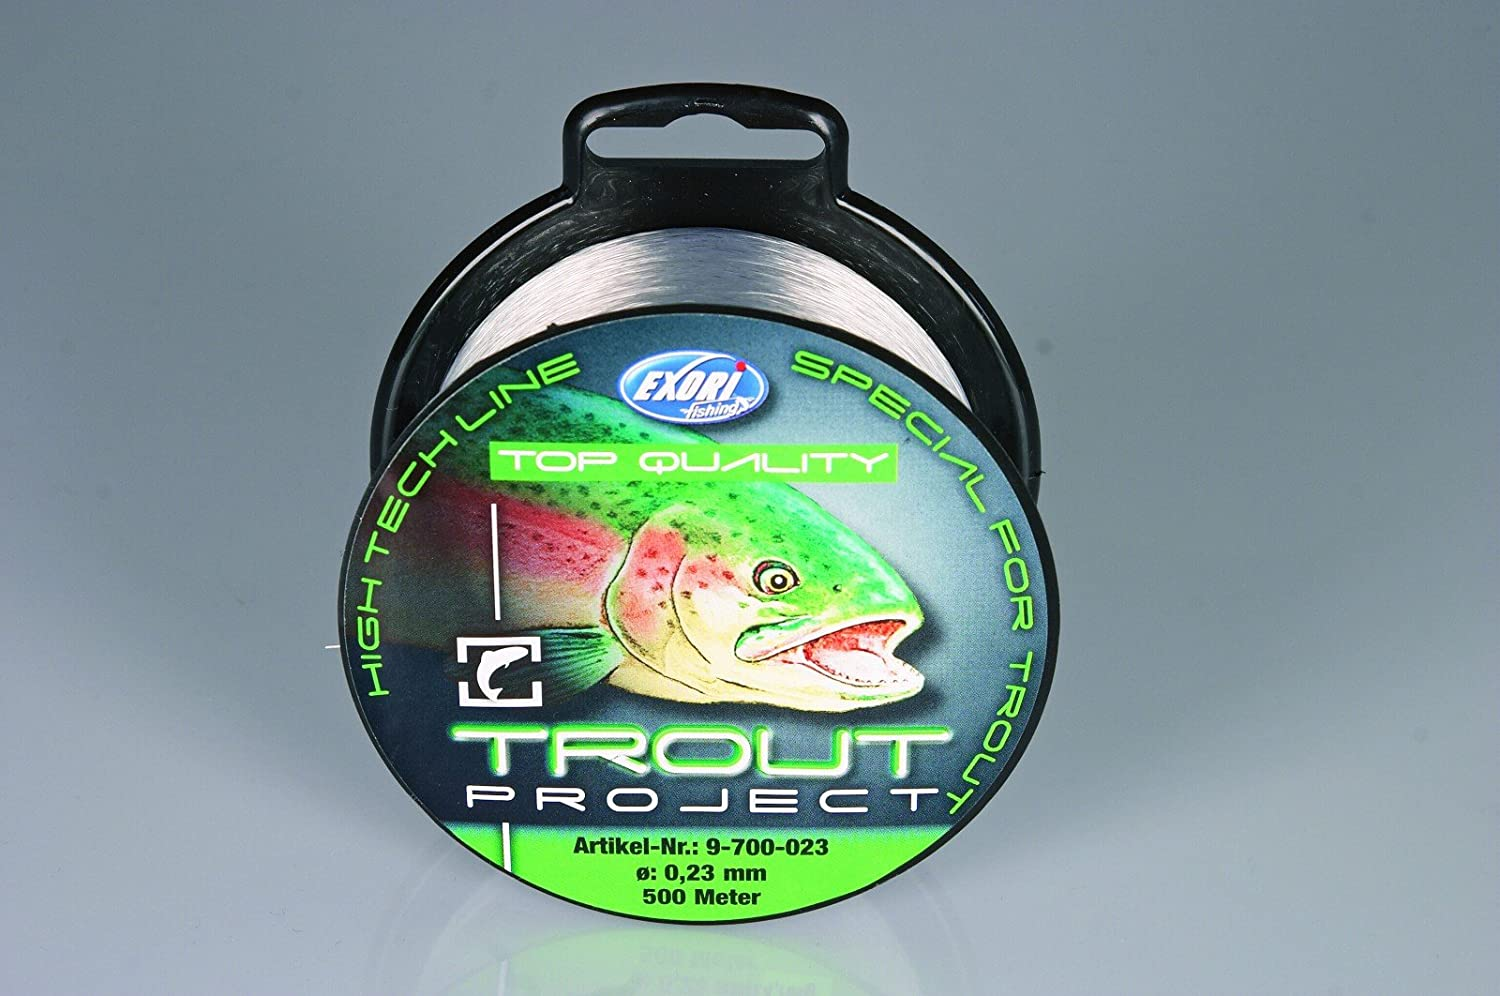 Exori Trout Project Top Quality 0,23mm 500m Forellenschnur